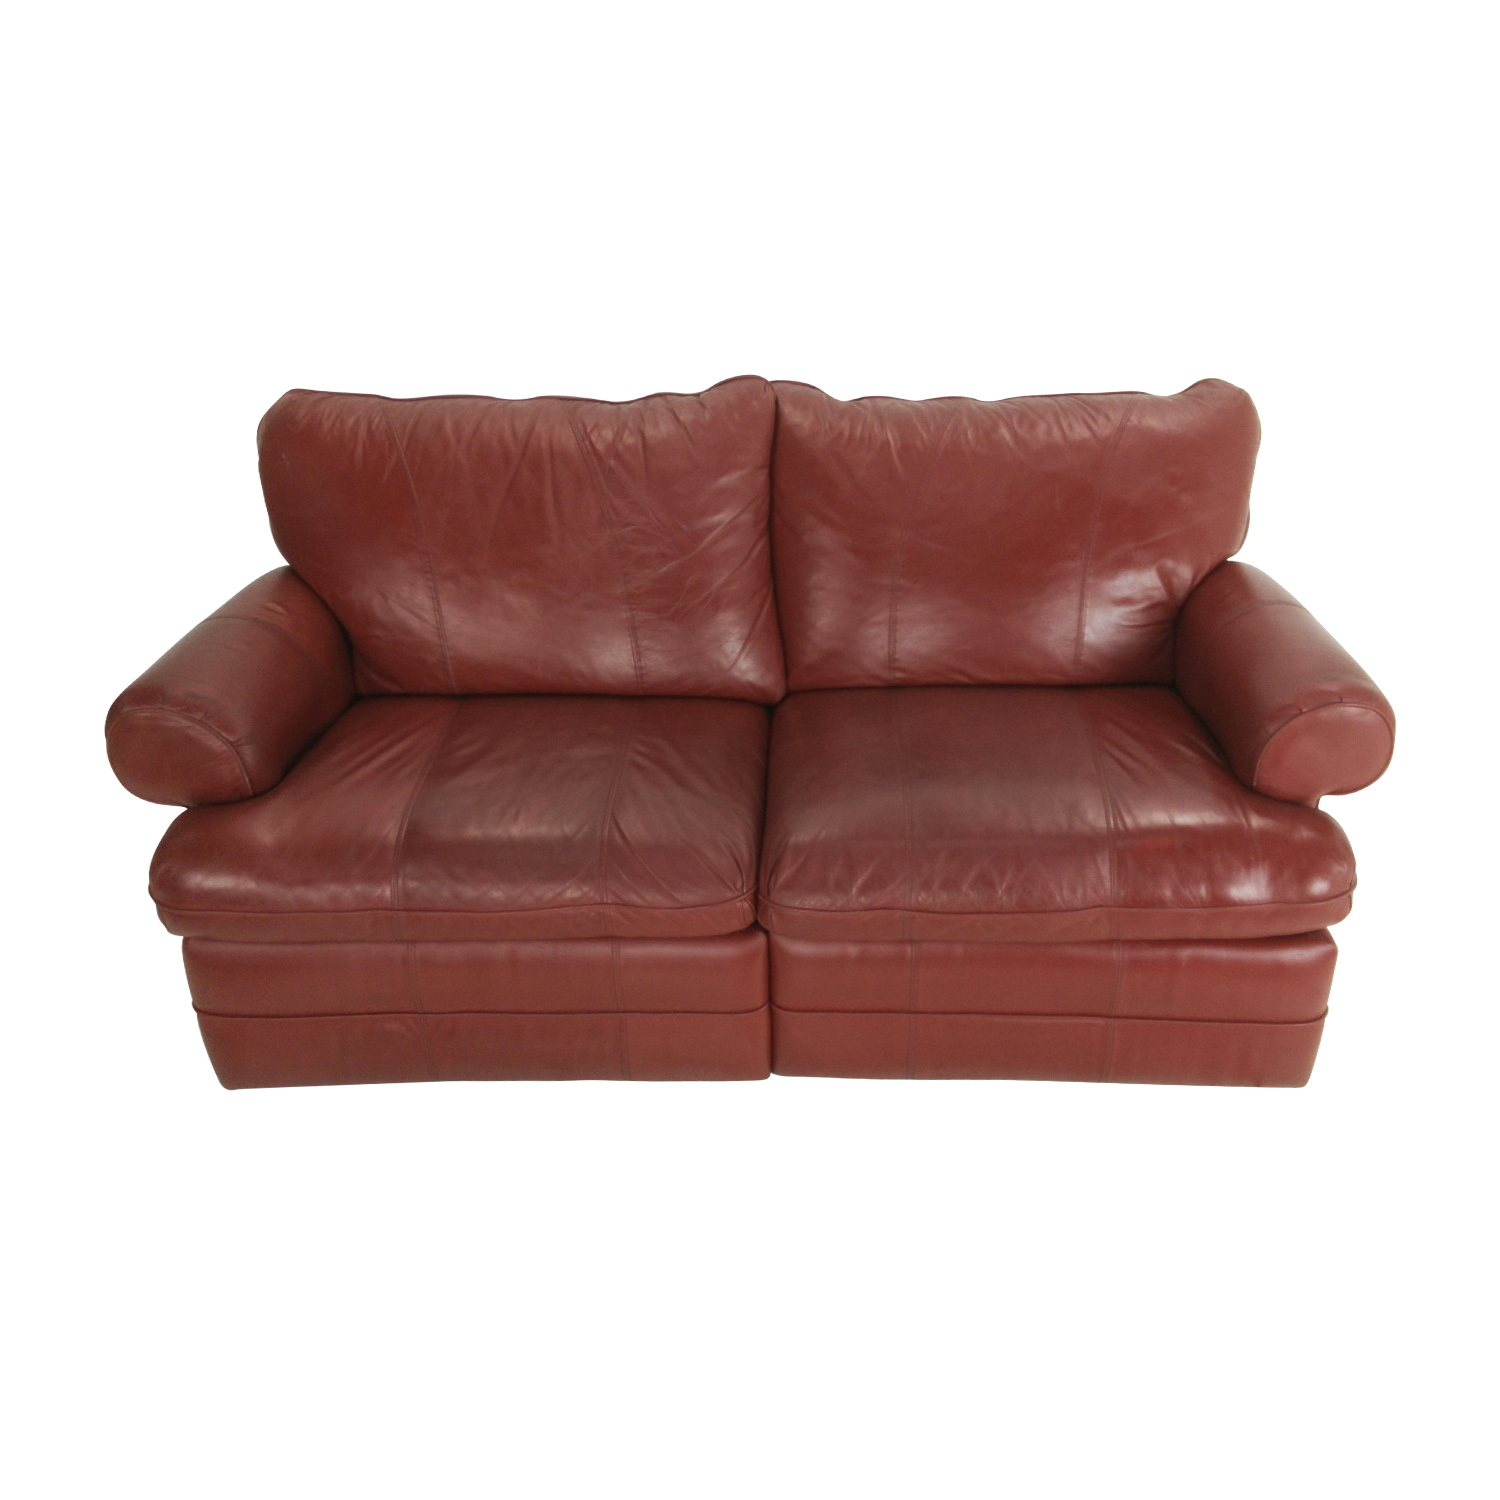 buy La-Z-Boy Red Recliner Couch La-Z-Boy Classic Sofas